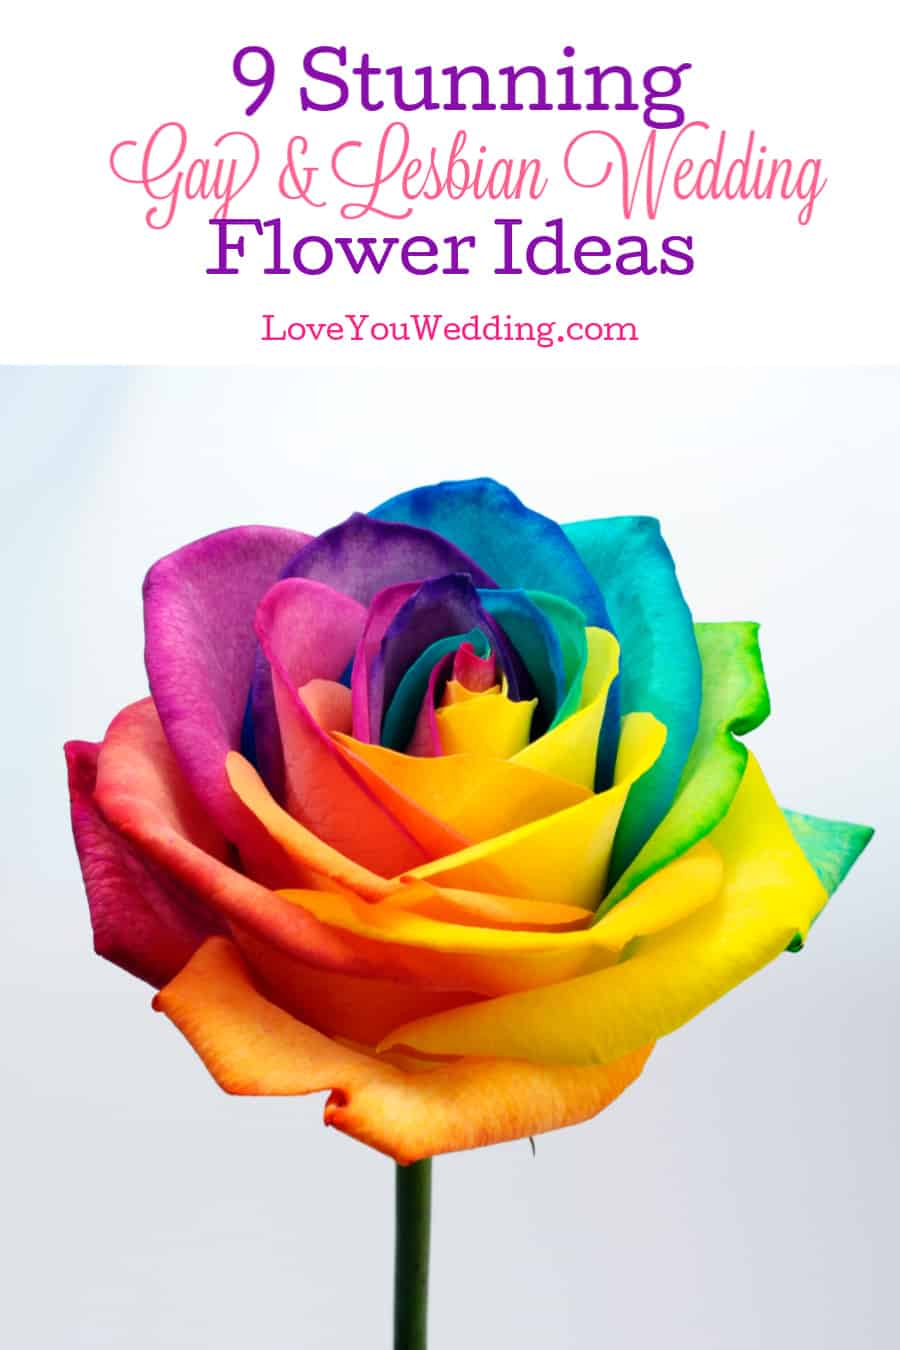 Be it blue and silver, black and red, or rainbow, this article will give you some ideas for your gay and lesbian wedding flowers.